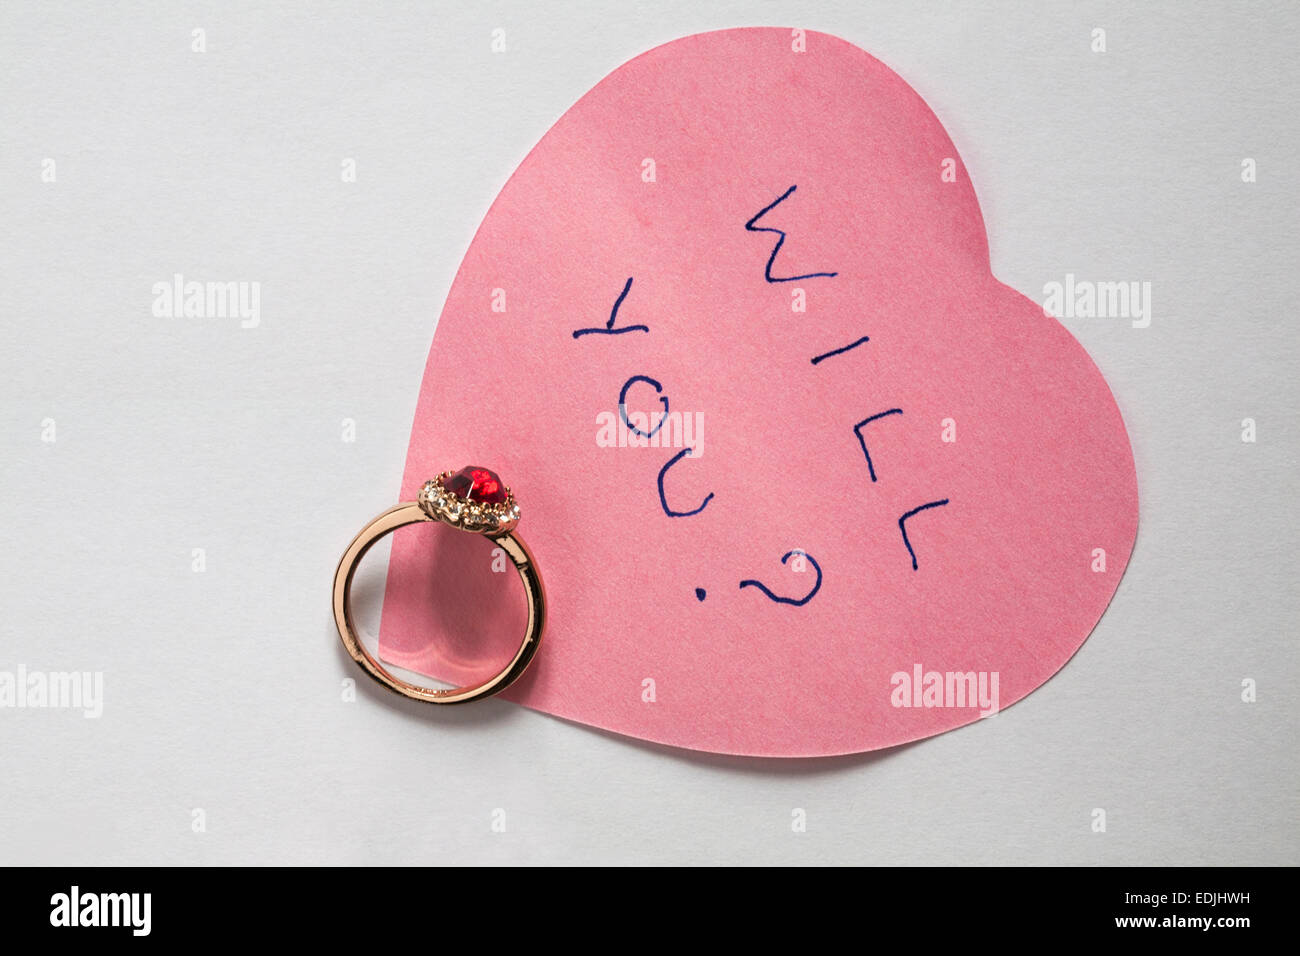 will you? message written on pink heart shaped post it note with engagement ring - marriage proposal isolated on - Stock Image